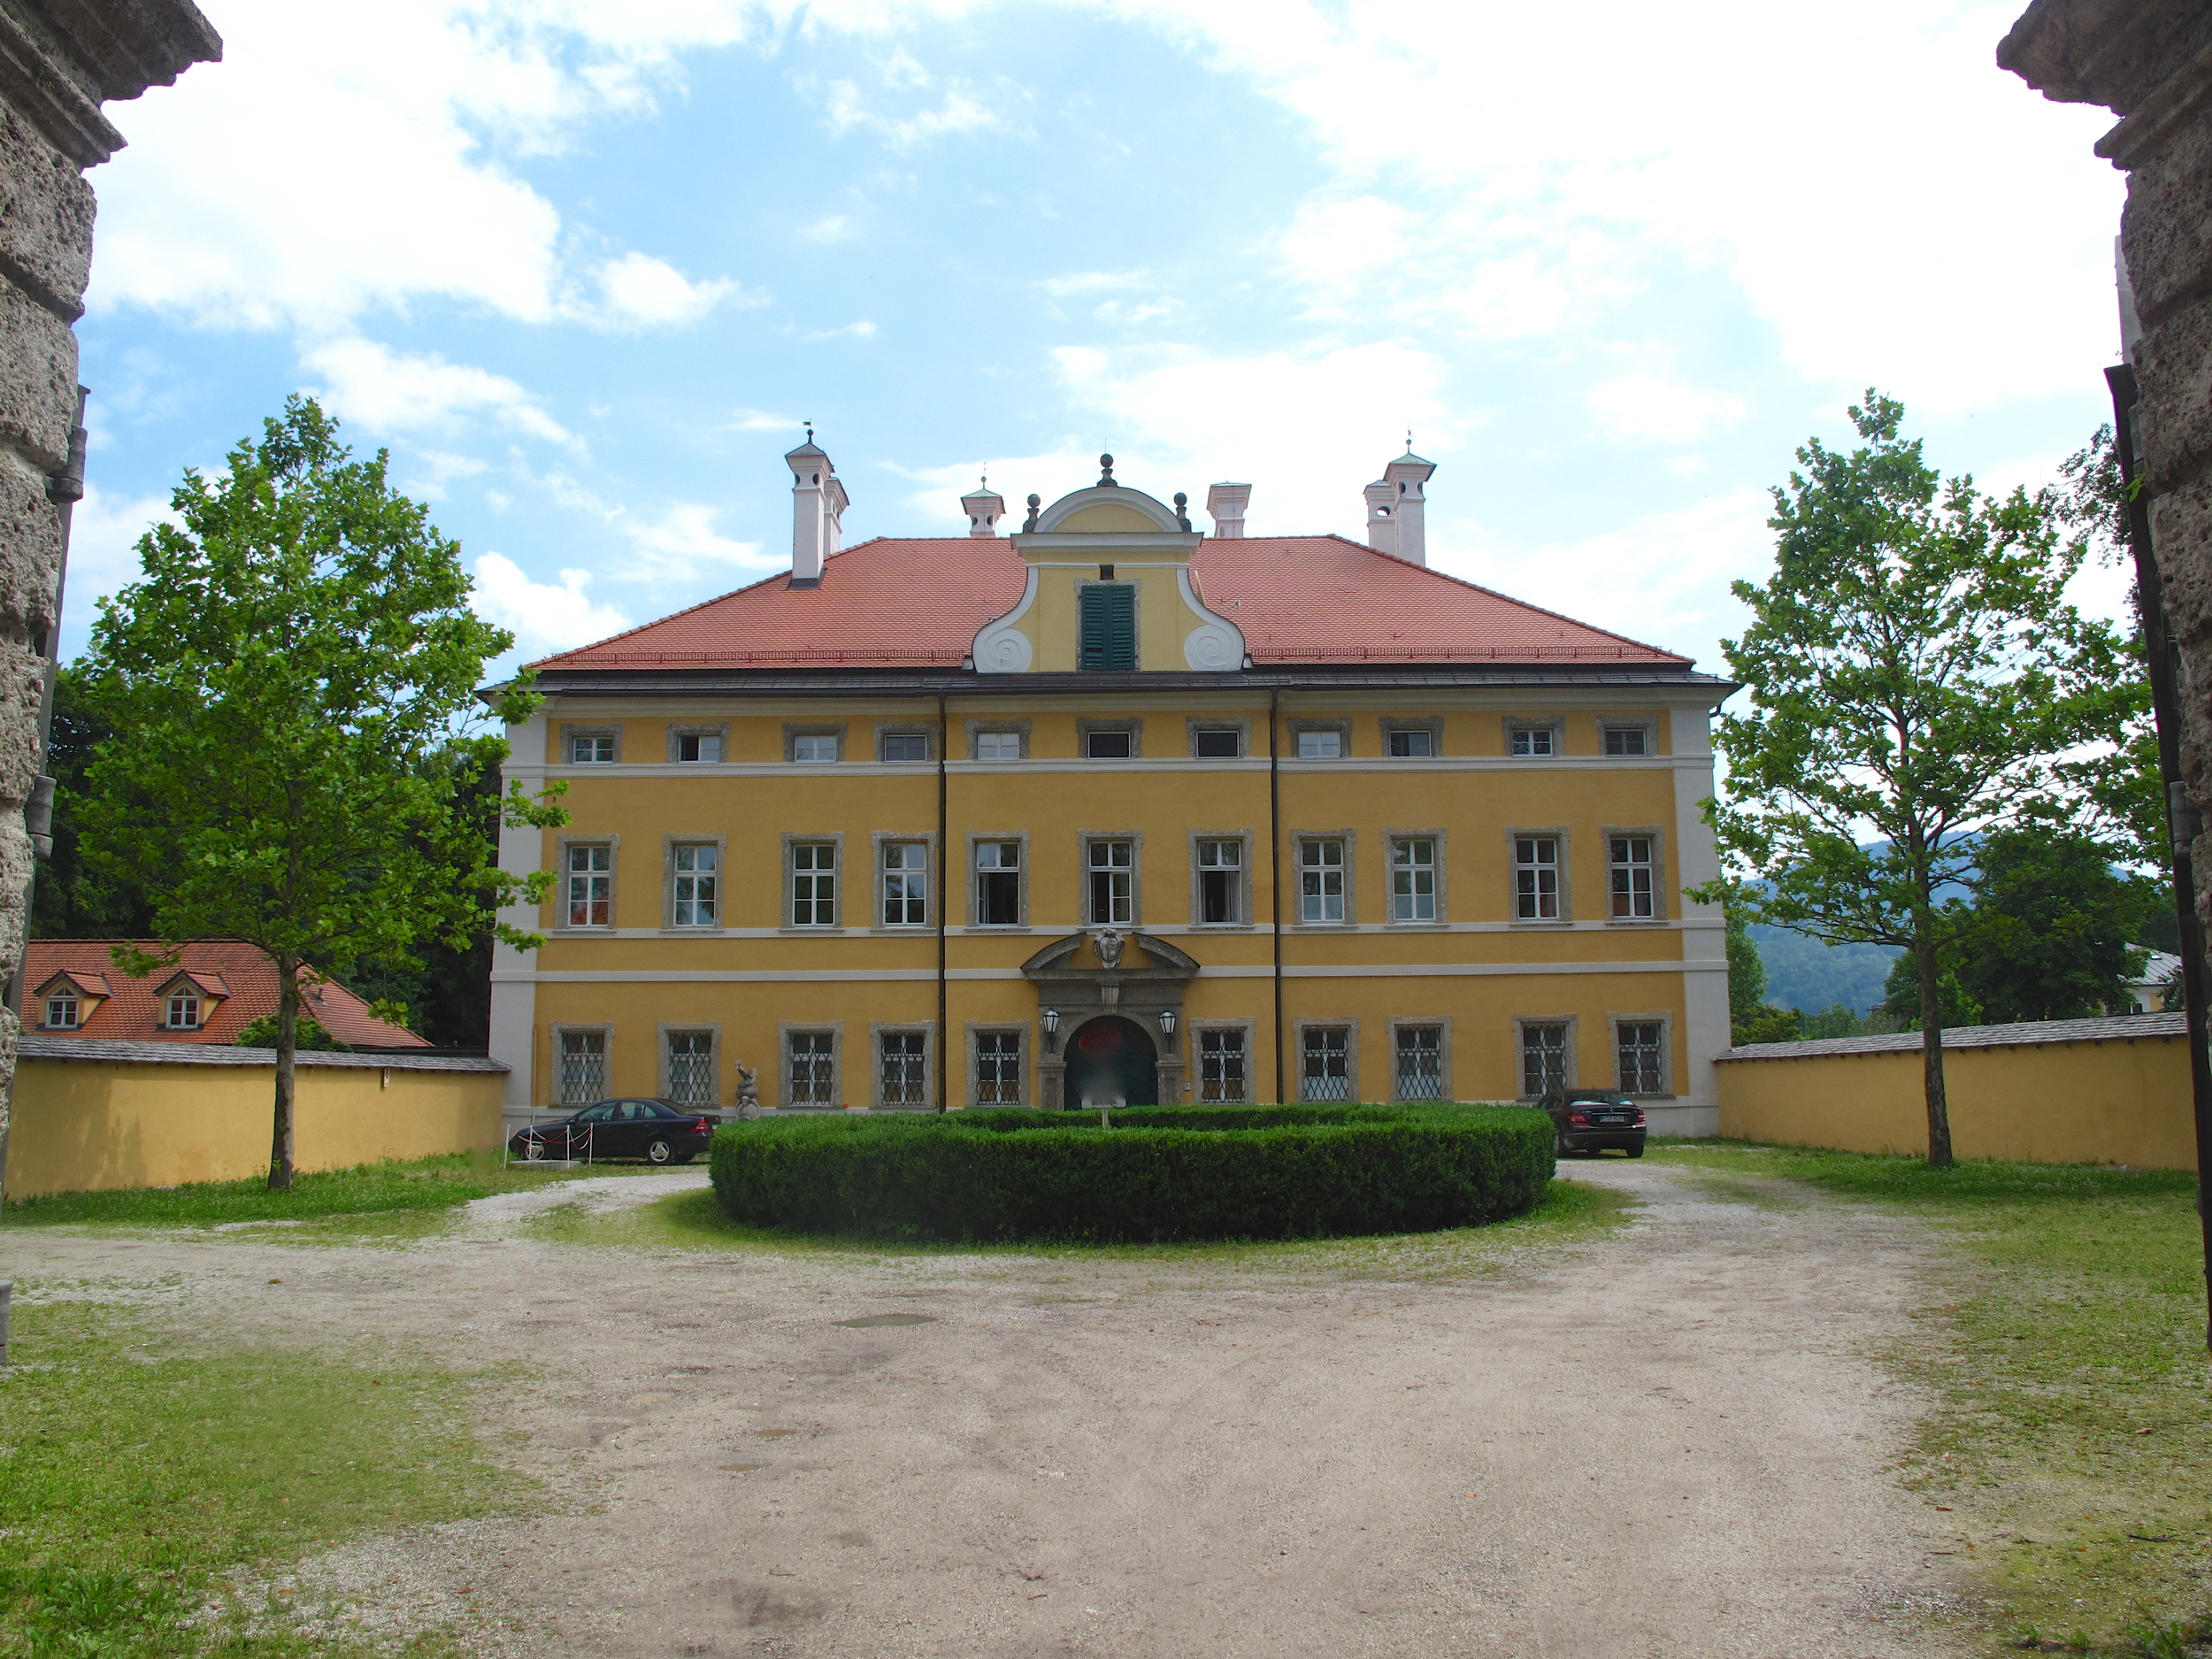 The House from the Sound of Music, in Salzburg